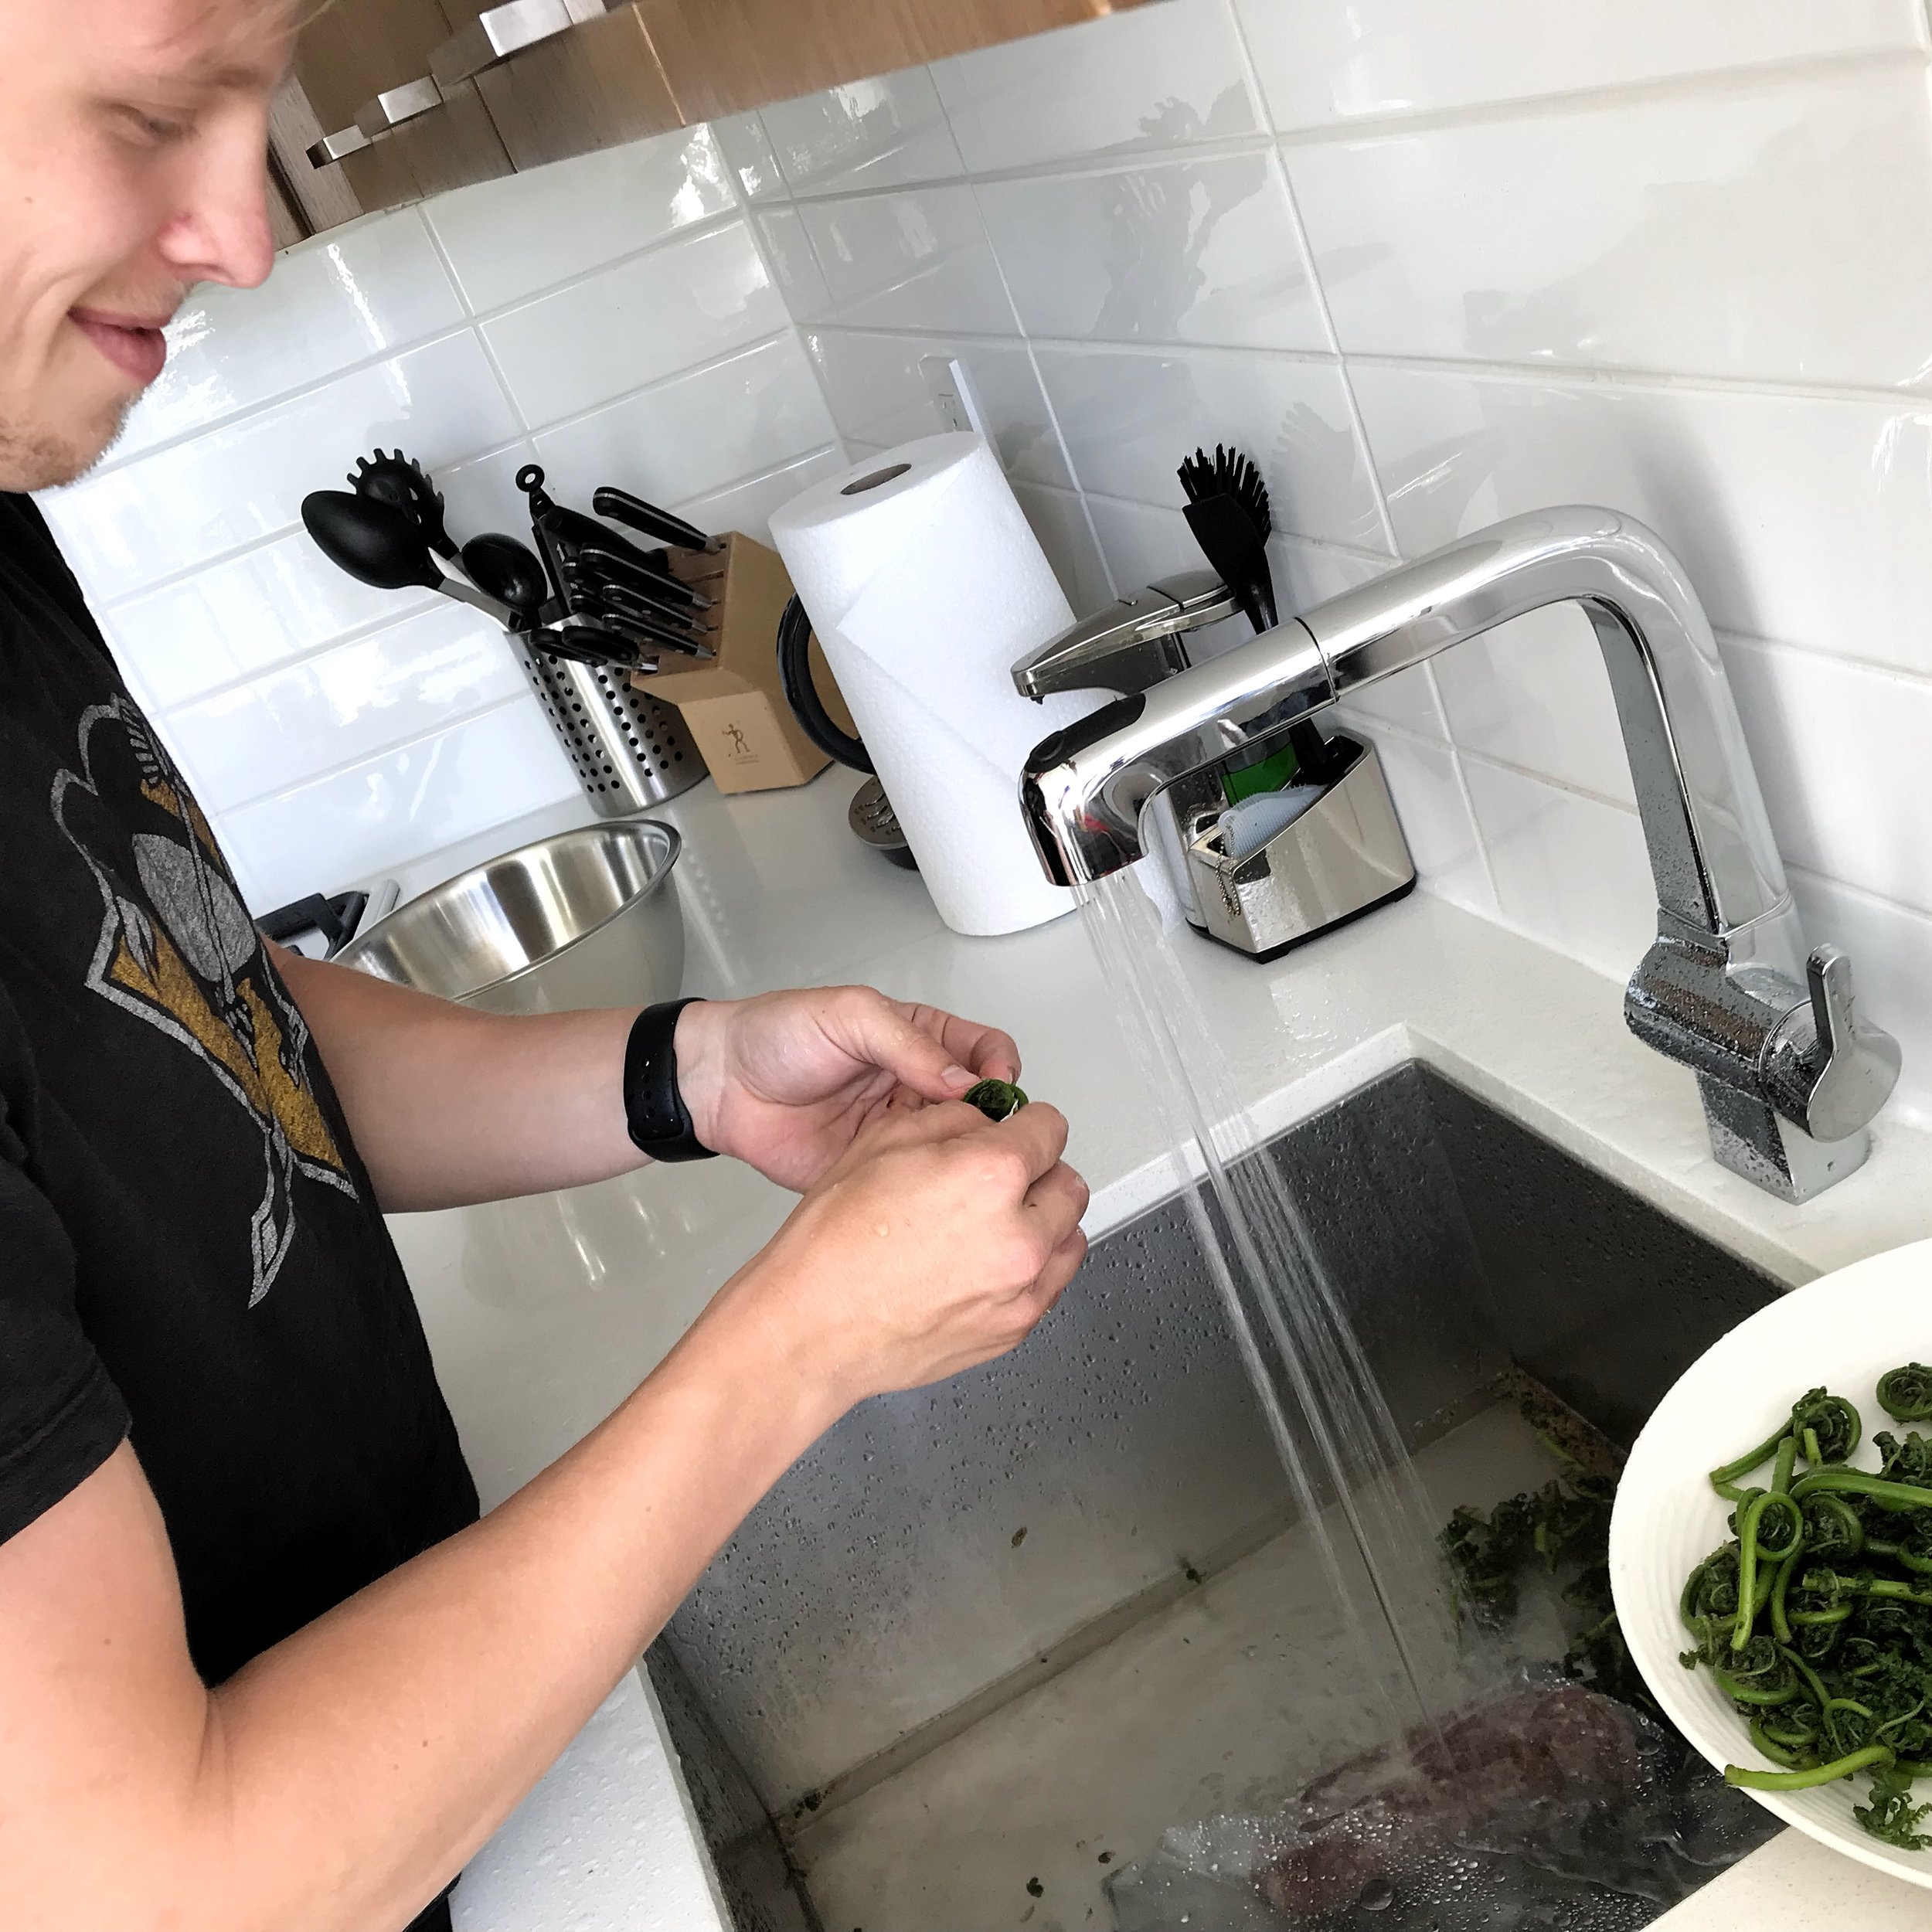 Discovering how hard it is to clean Fiddleheads